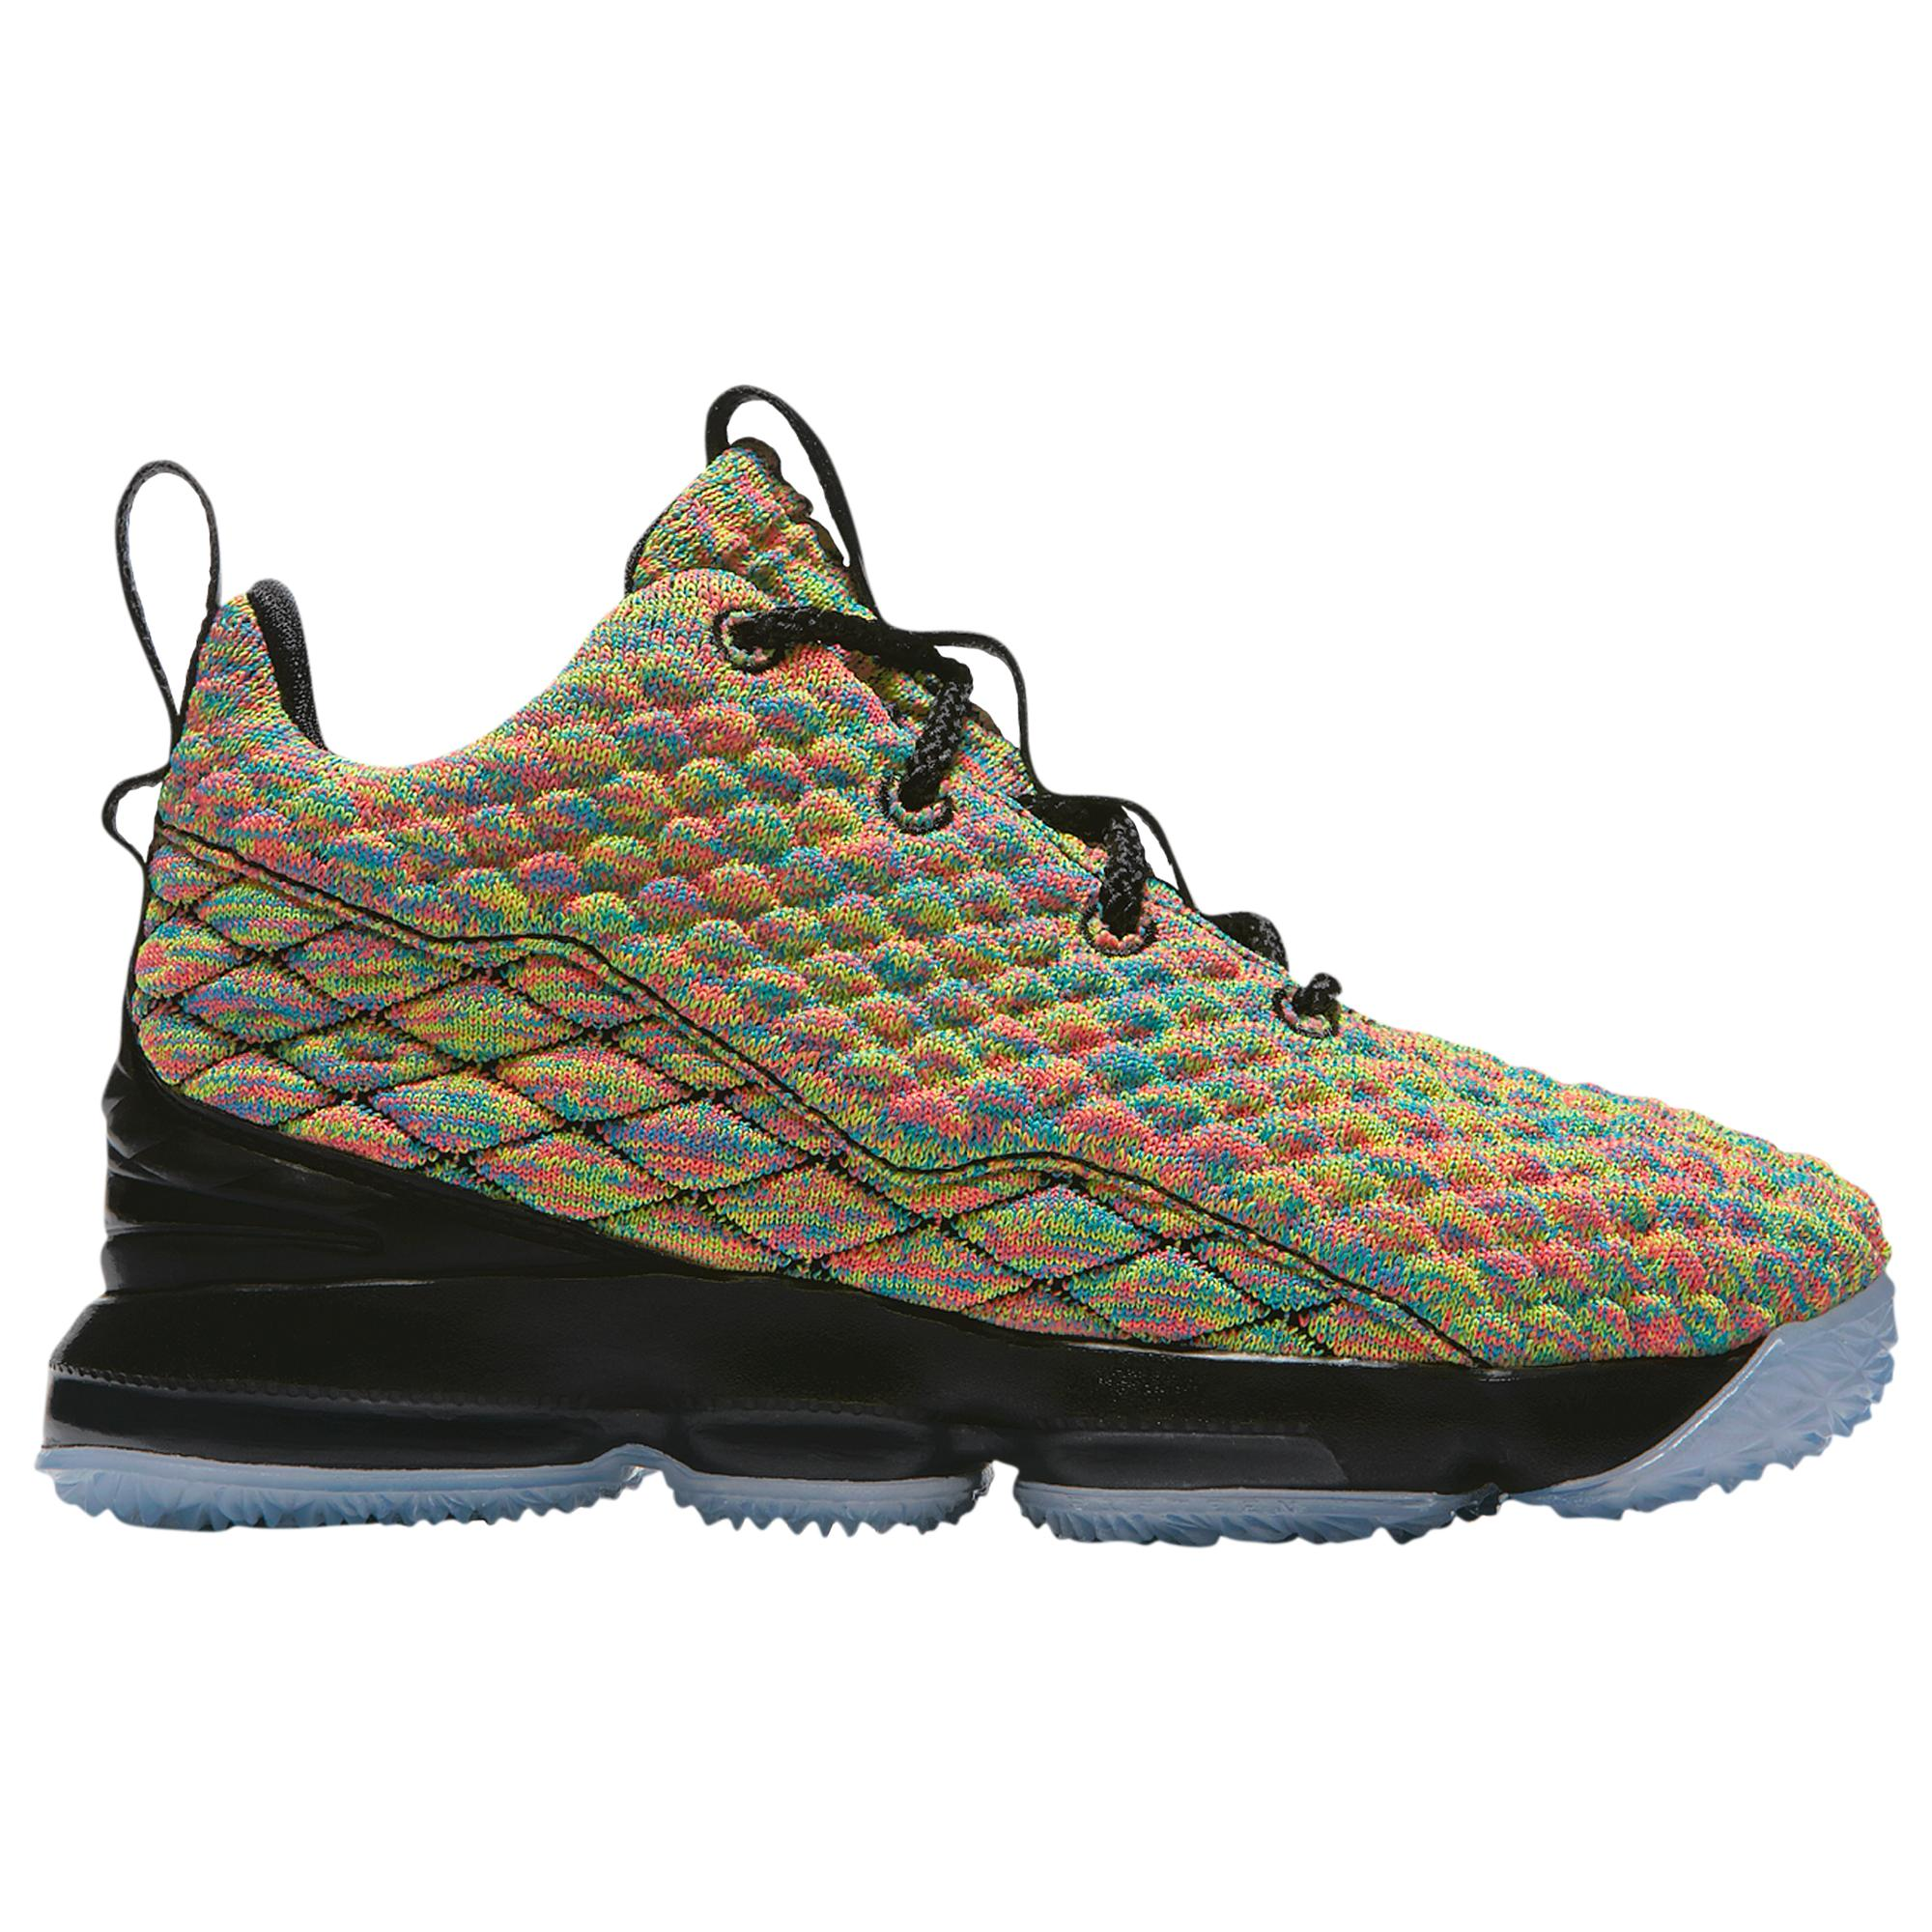 huge selection of f81bf c8923 Nike - Multicolor Lebron 15 Basketball Shoes for Men - Lyst